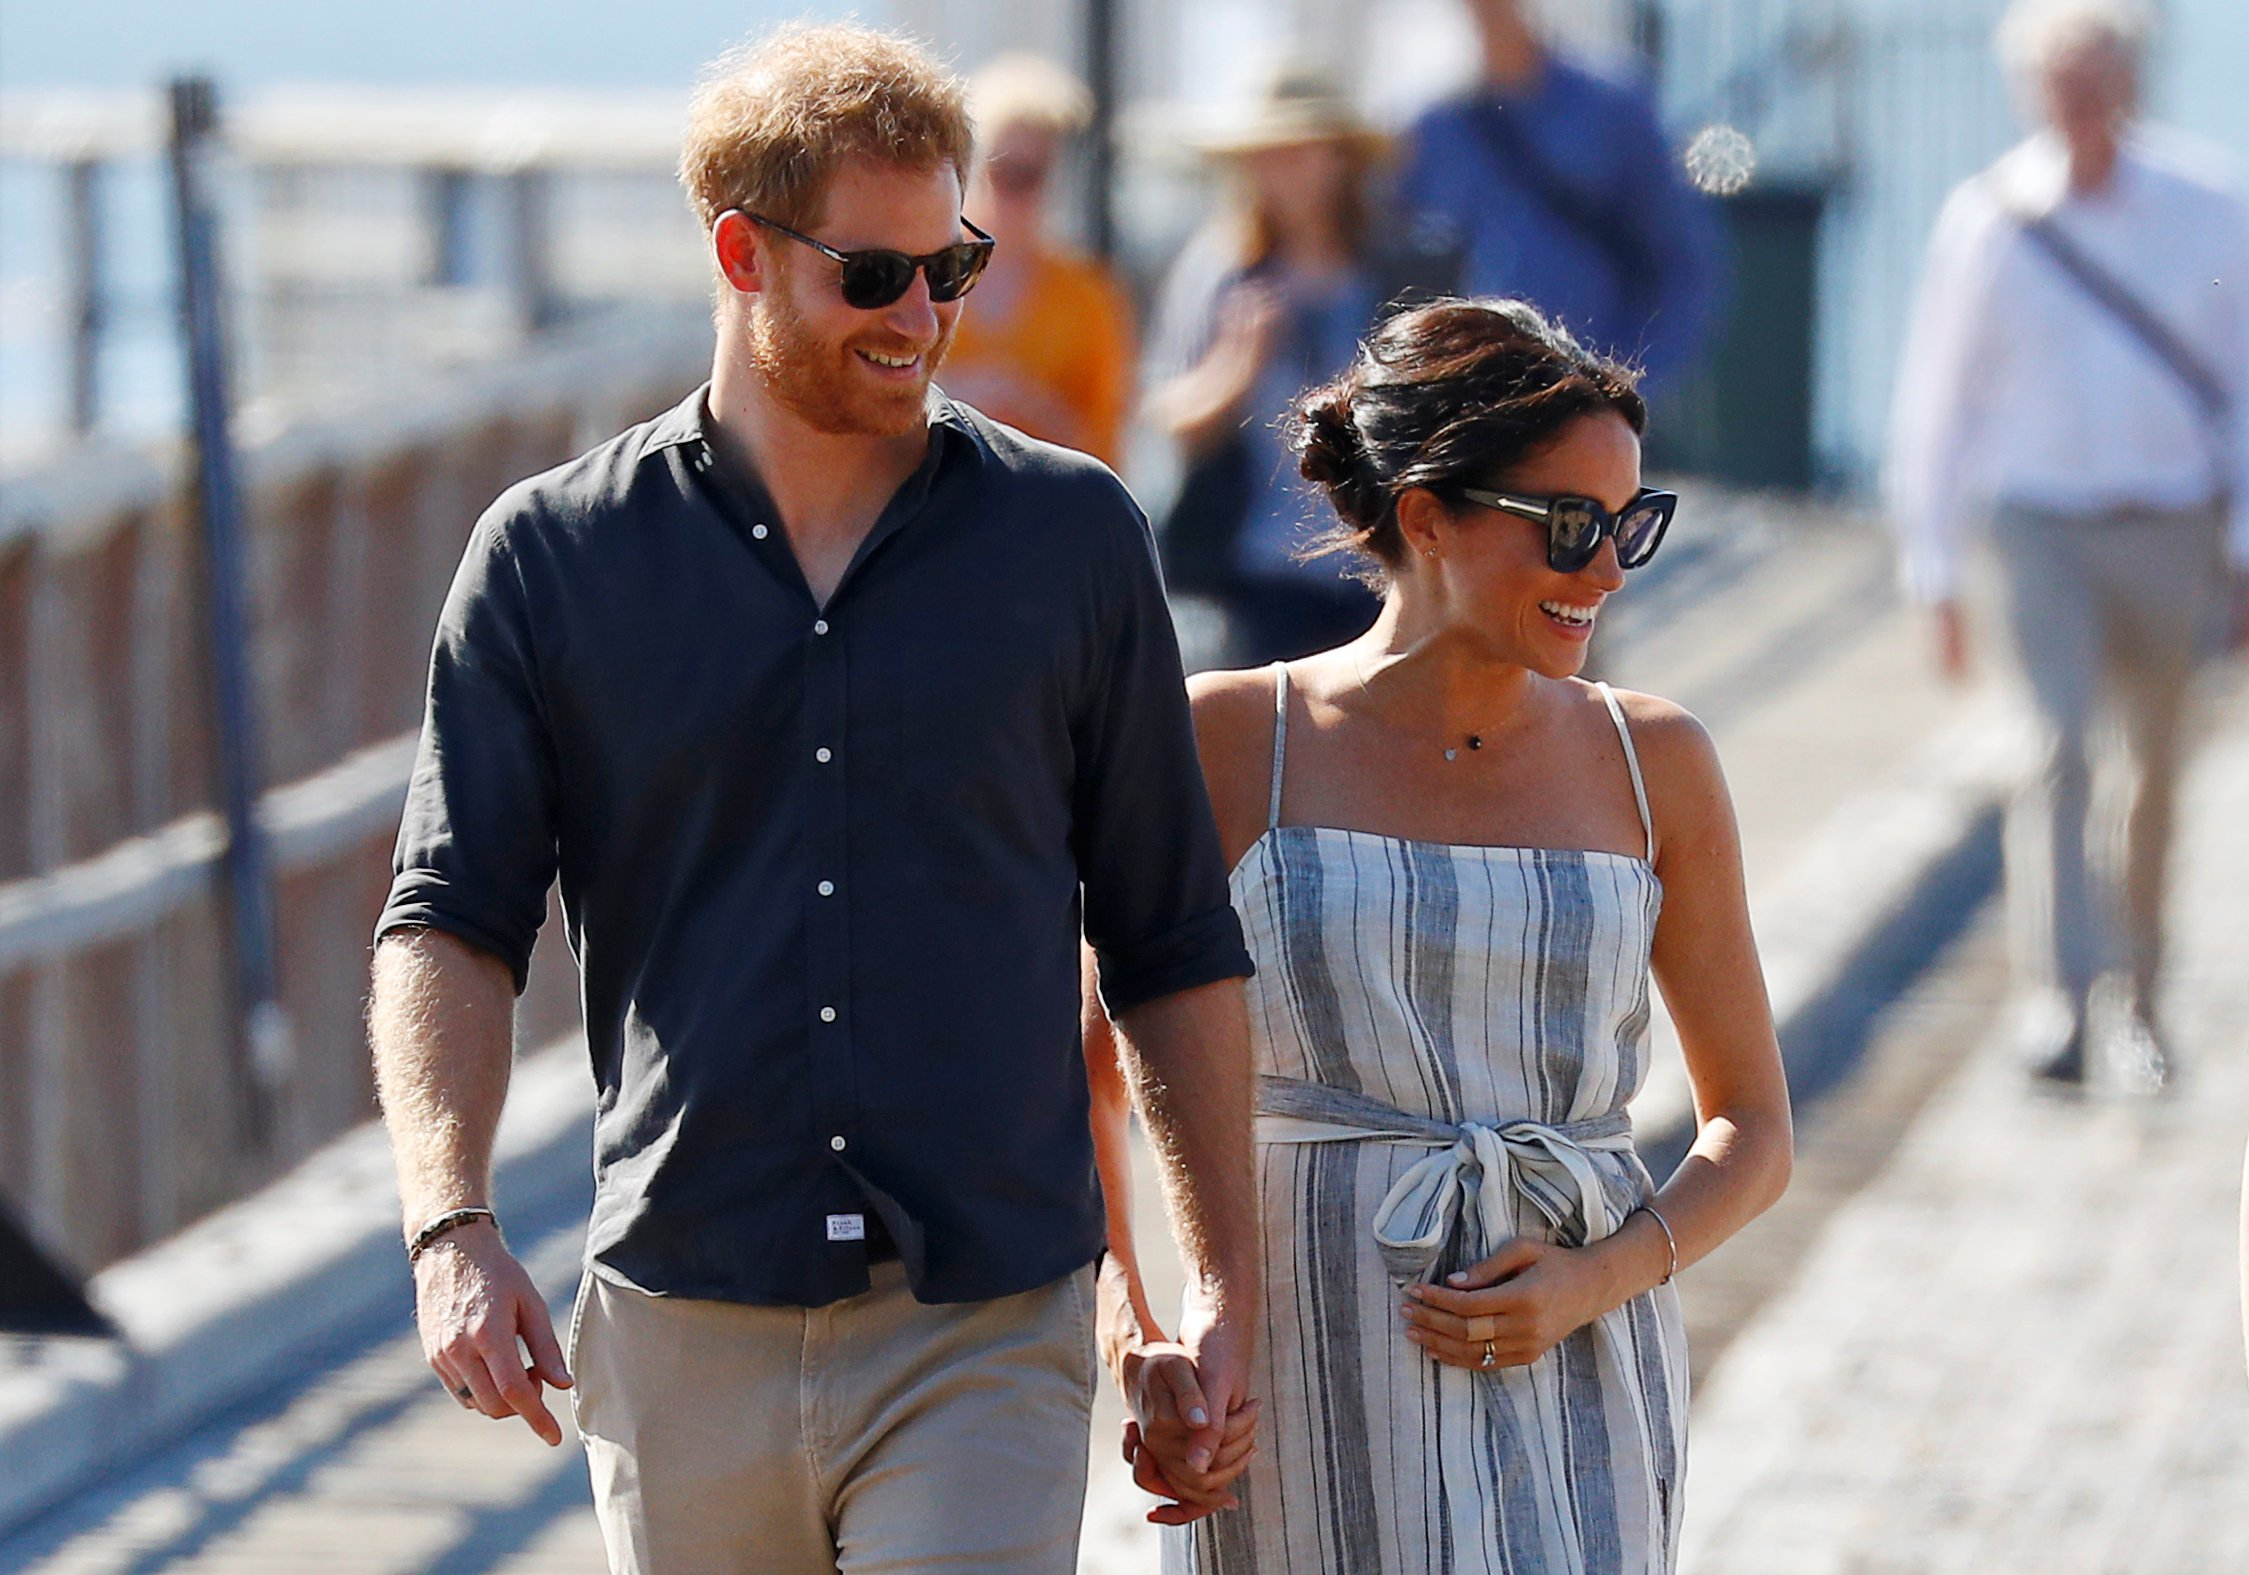 Britain's Prince Harry and Meghan, Duchess of Sussex, arrive to greet members of the public in Kingfisher Bay on Fraser Island in Queensland, Australia October 22, 2018. REUTERS/Phil Noble